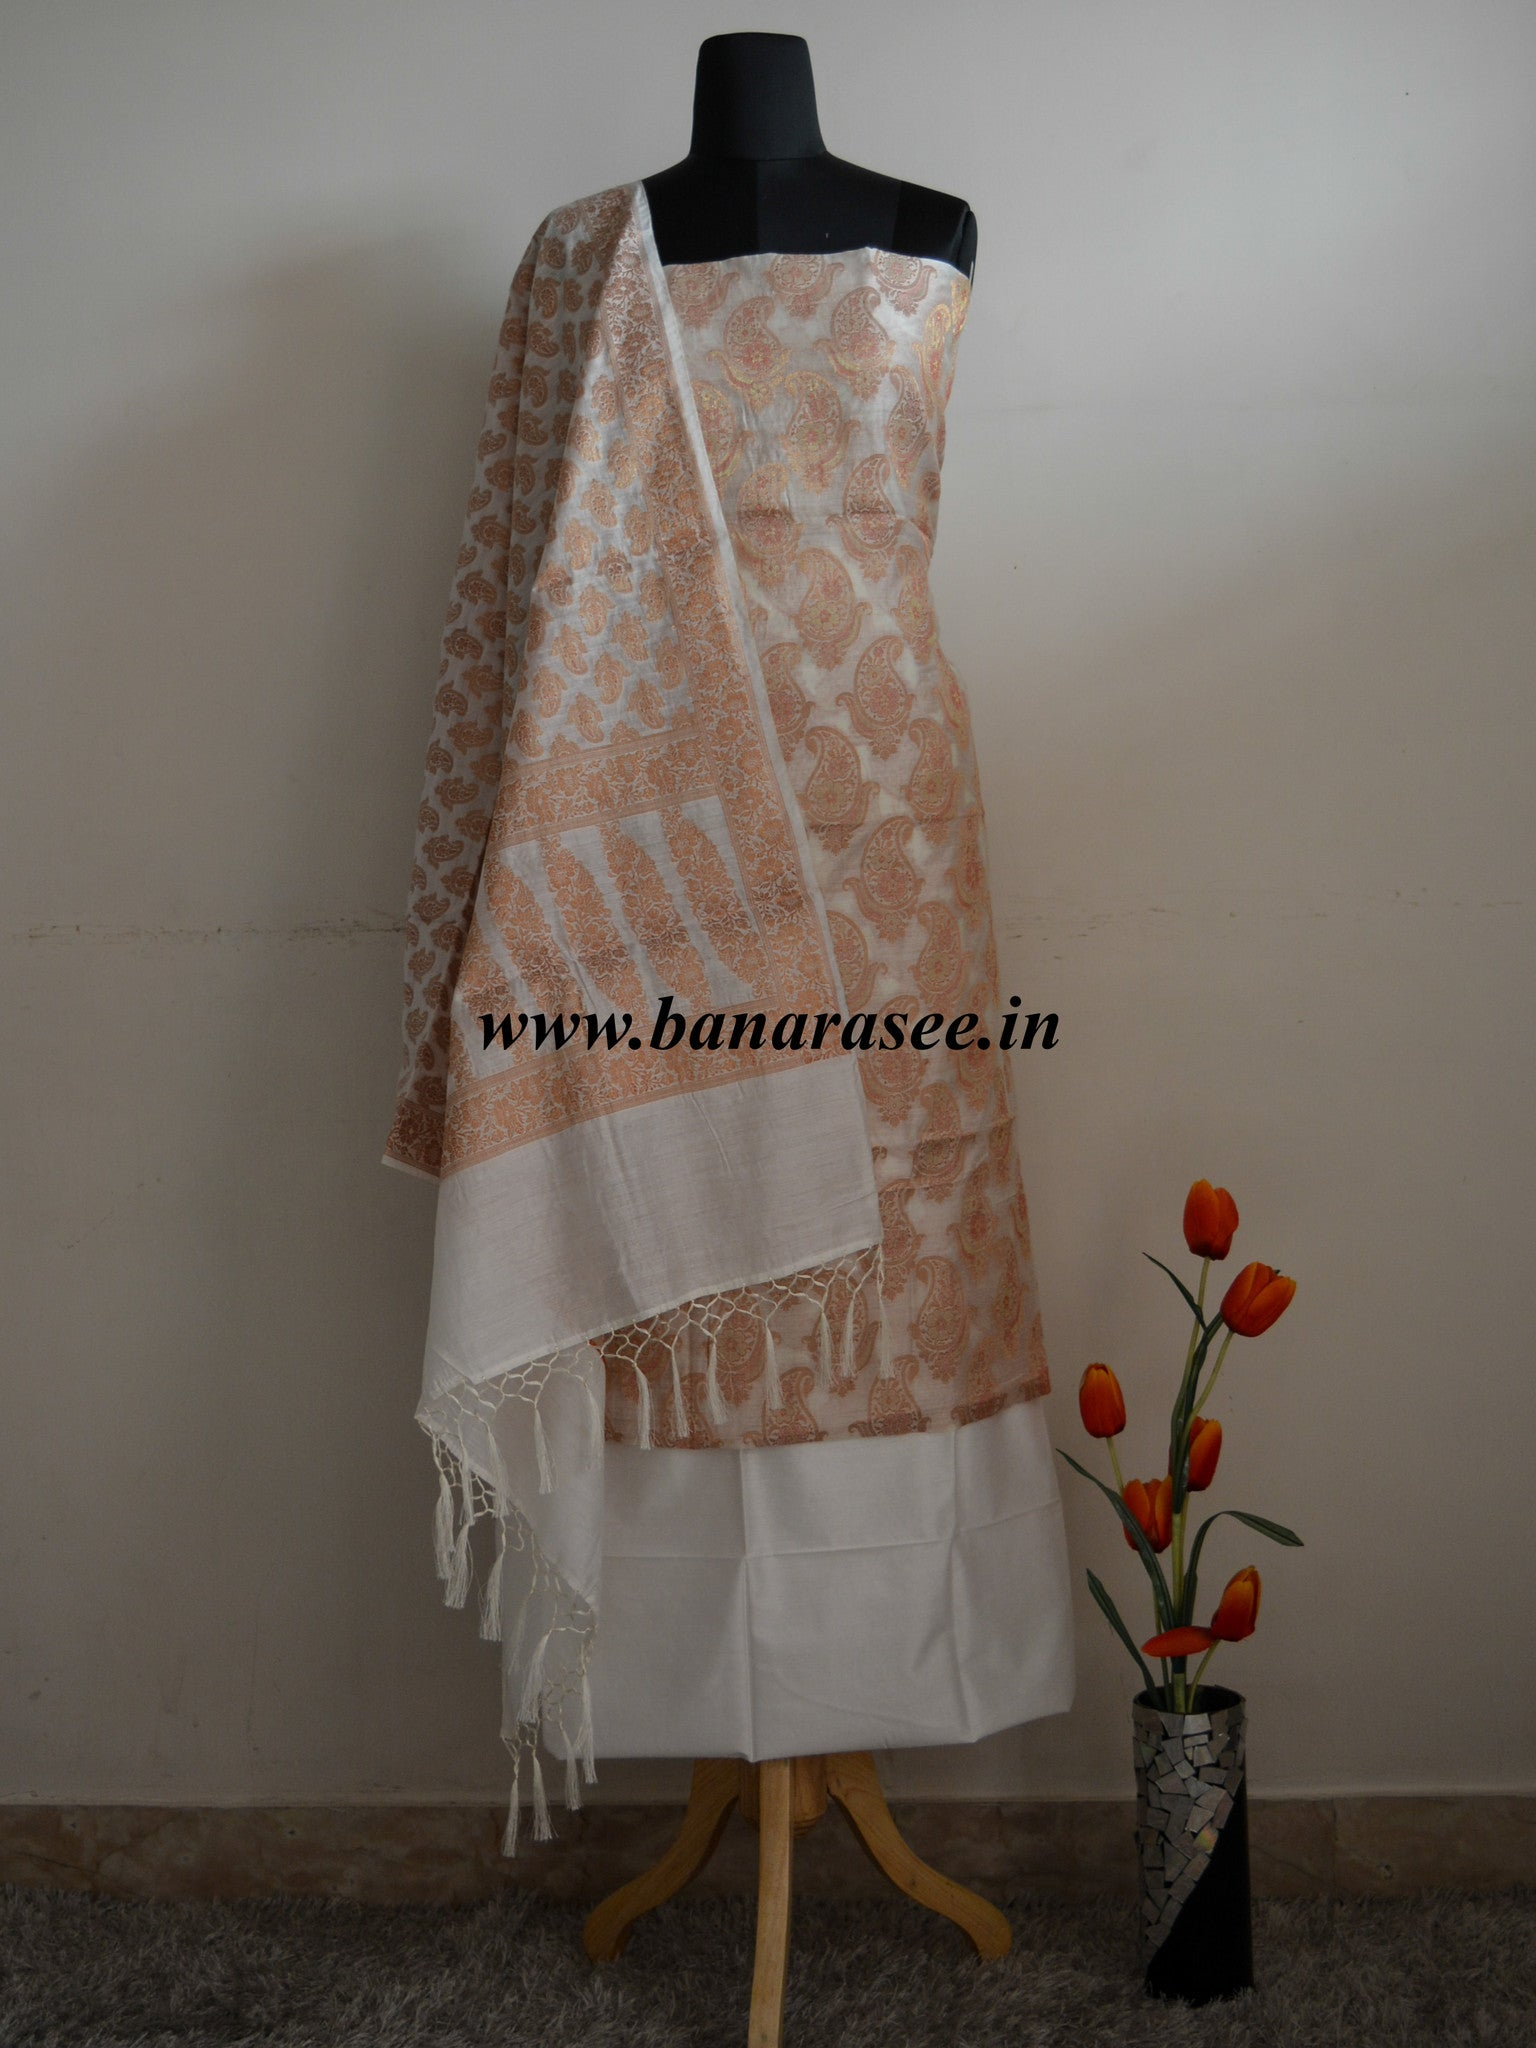 Banarasee/Banarasi Salwar Kameez Cotton Silk Copper Zari Buti Woven Fabric-Off White